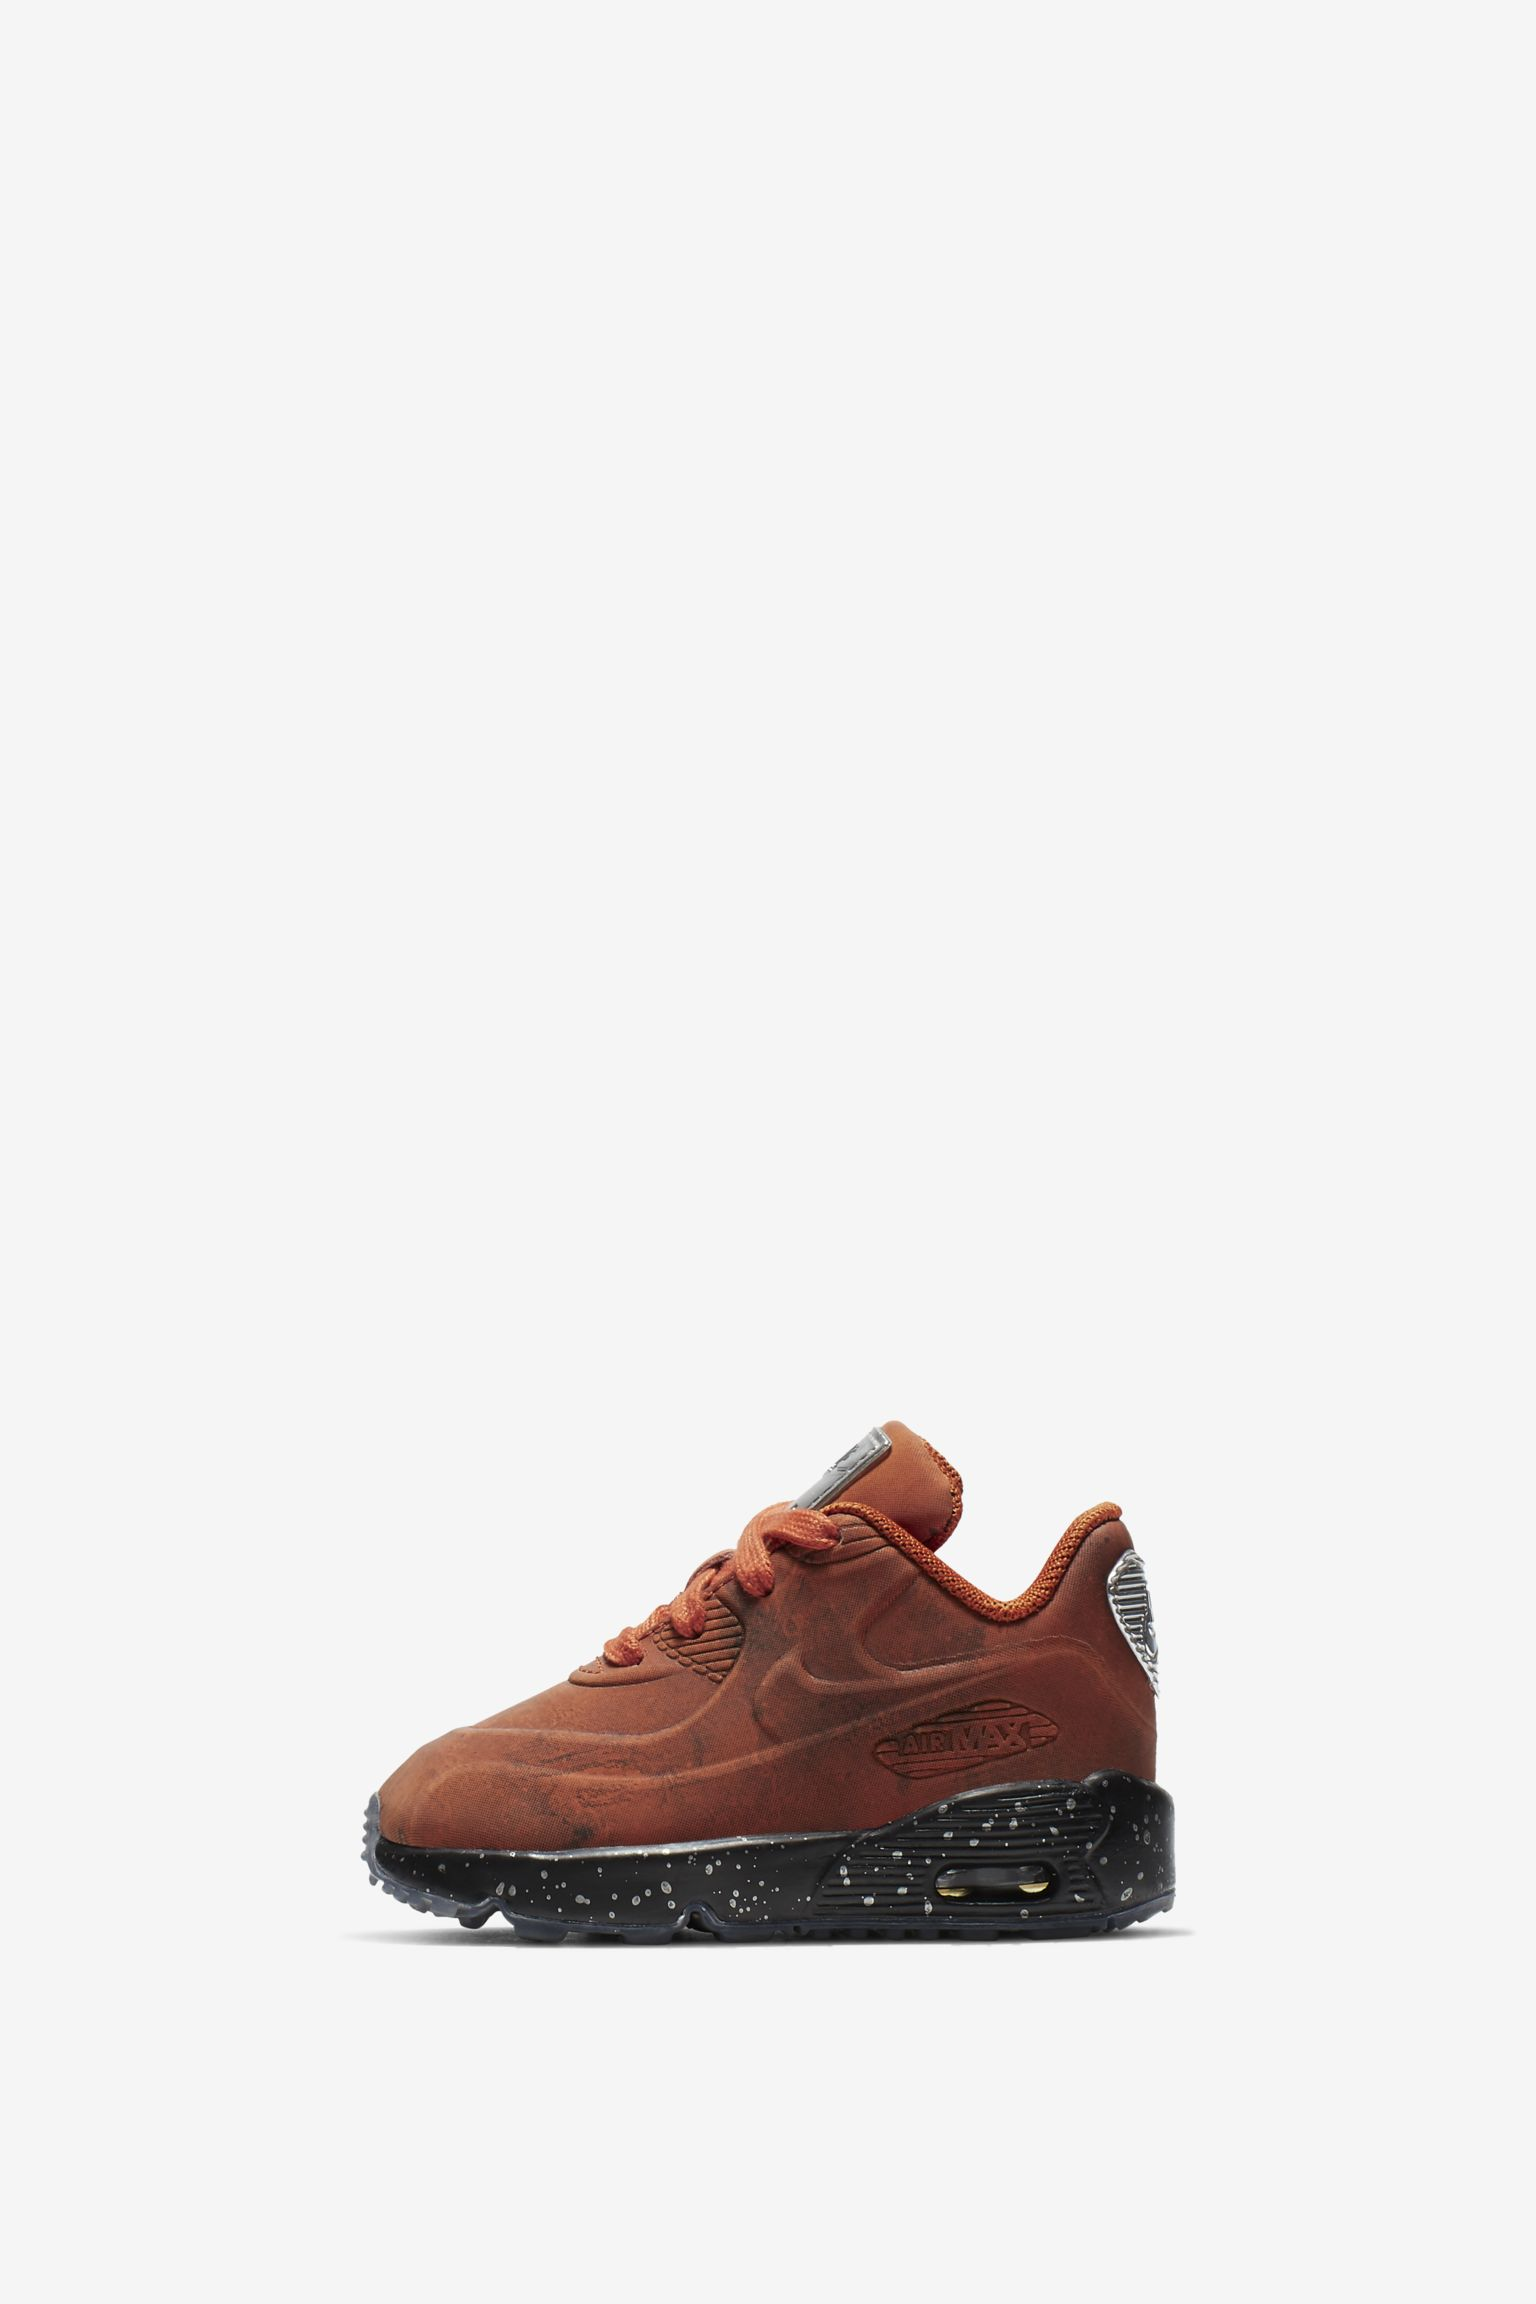 nike mars landing toddler - photo #12